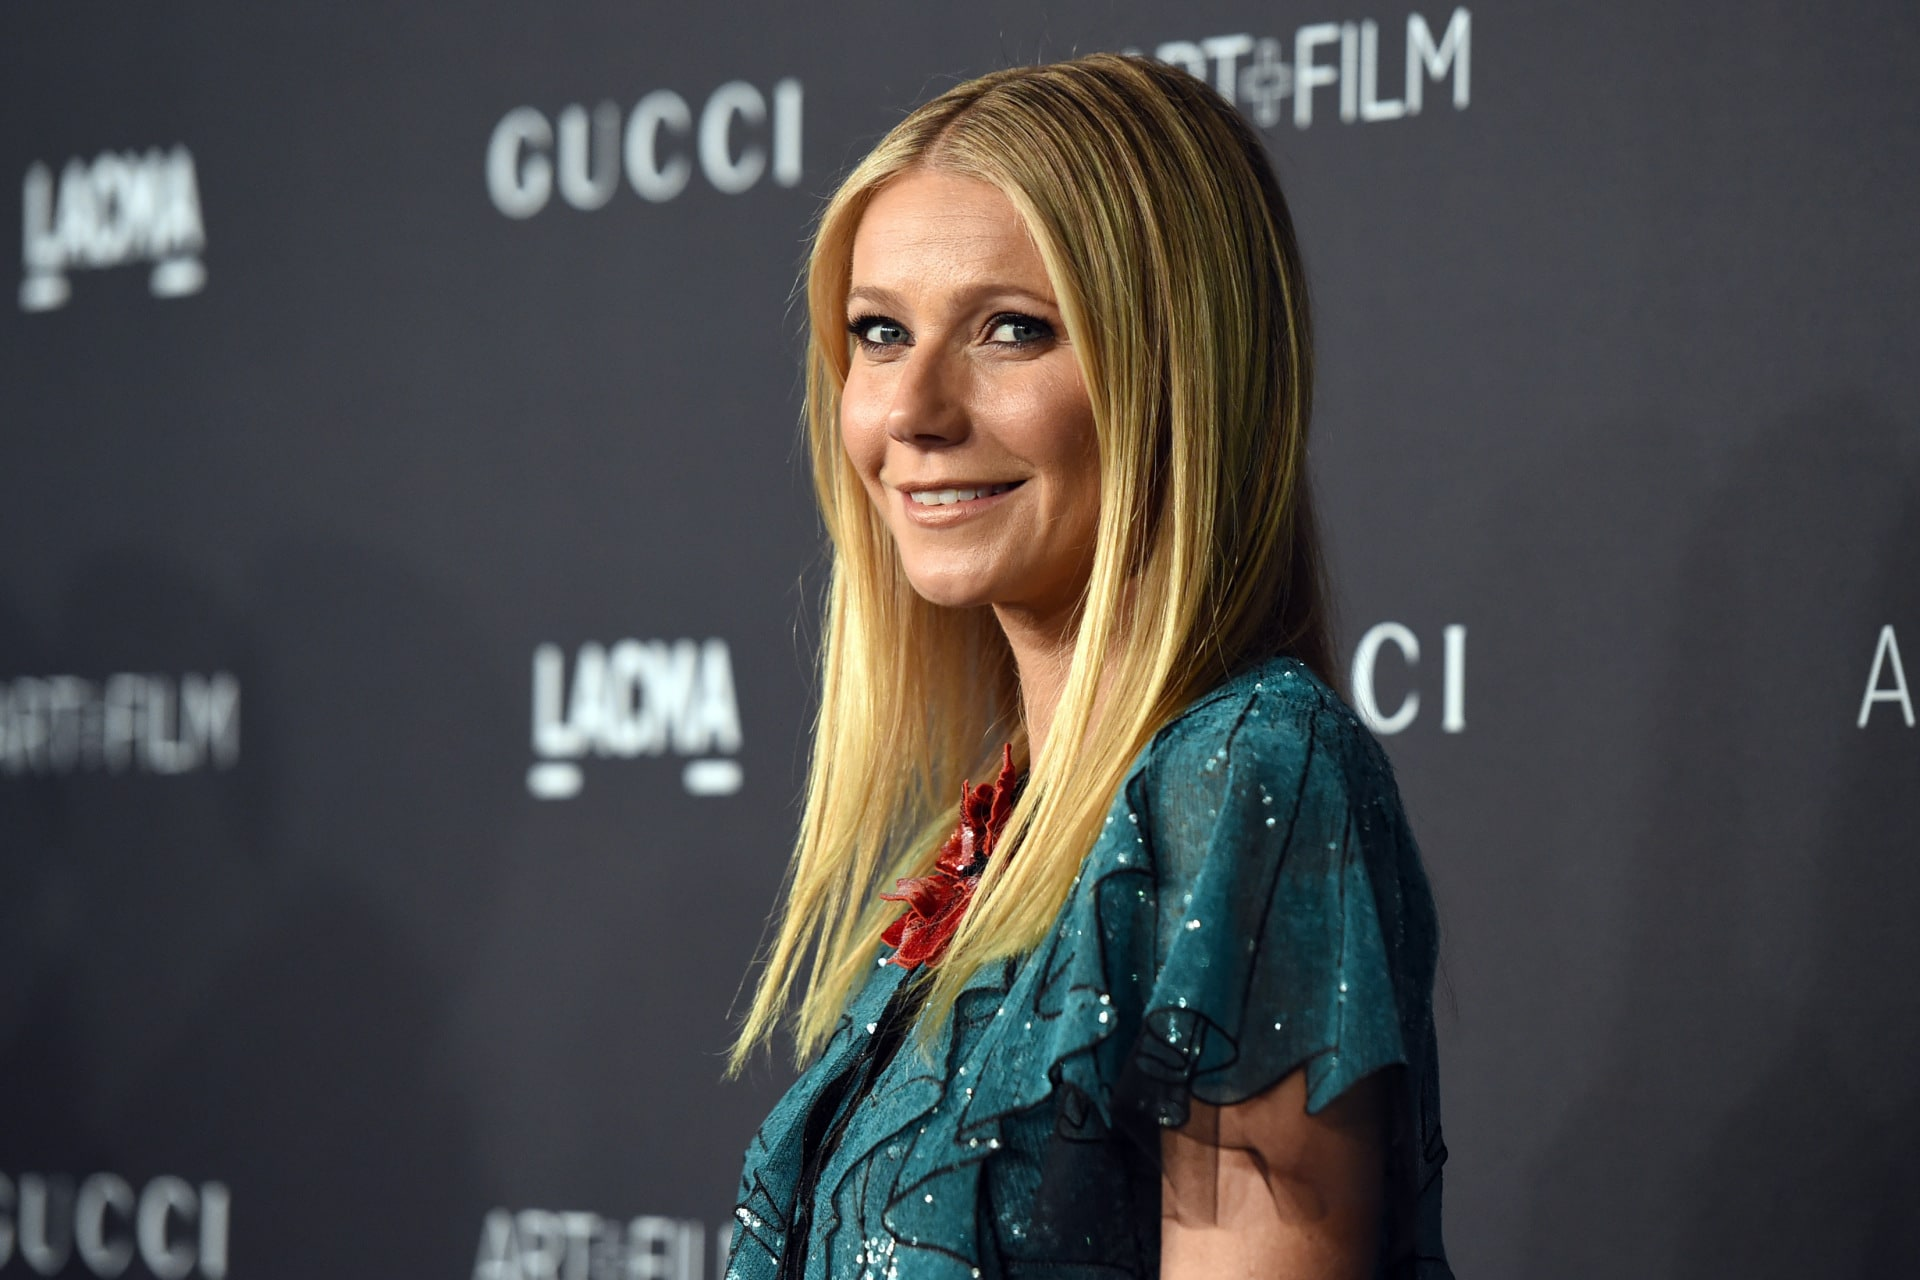 Gwyneth Paltrow is currently in Mexico on her bachelorette party